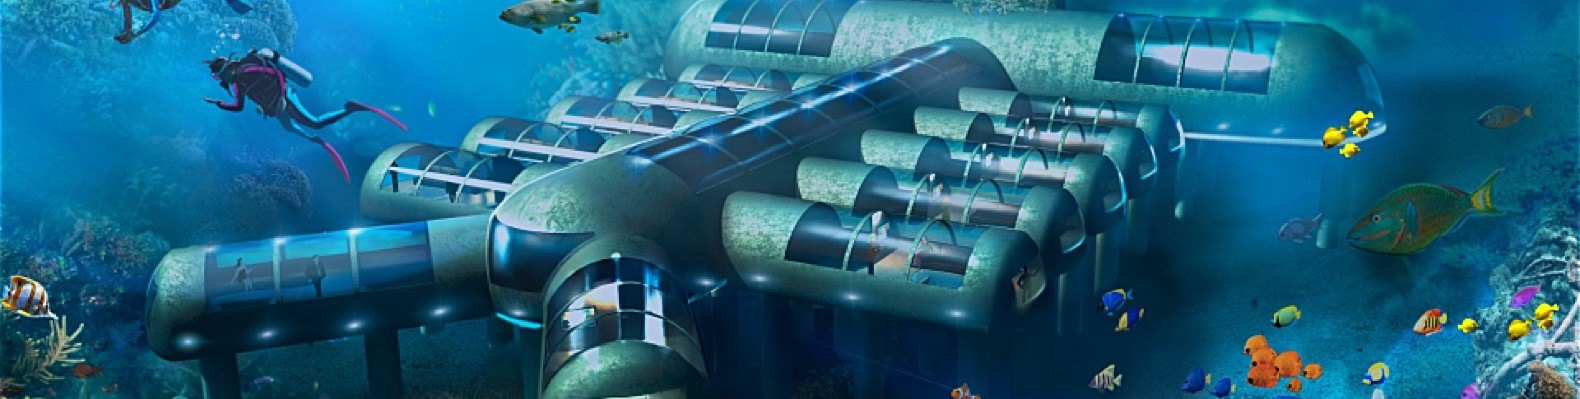 New Underwater Hotel In Florida To Use Profits To Protect Coral Reefs